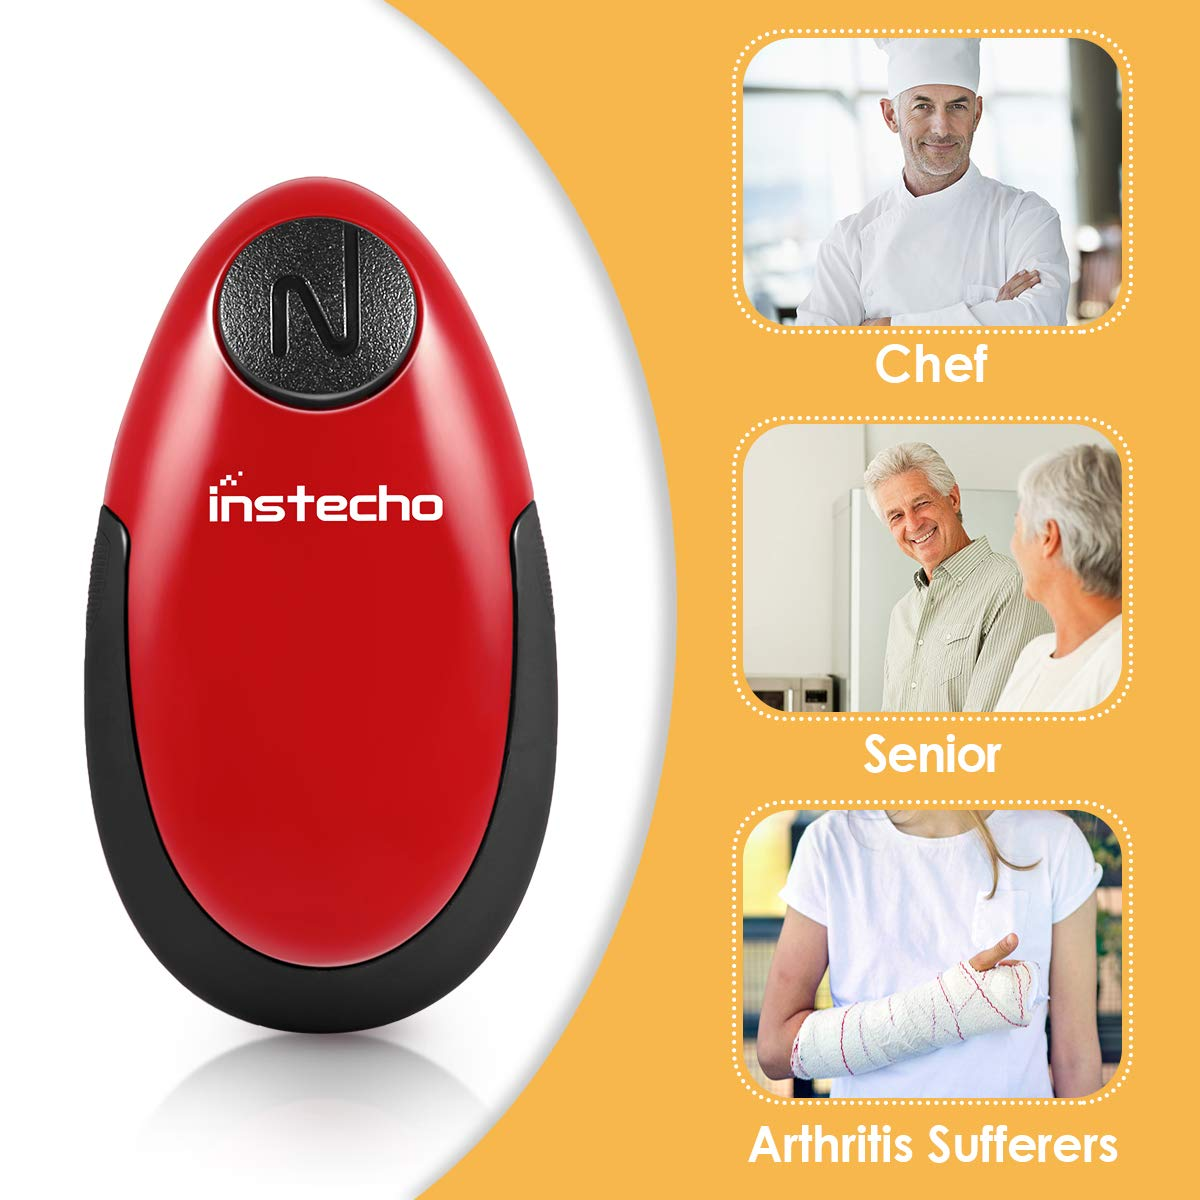 Electric Can Opener, Restaurant Can Opener, One Touch Can Opener, Full - Automatic Hands Free Can Opener, Chef's Best Choice by instecho (Image #2)